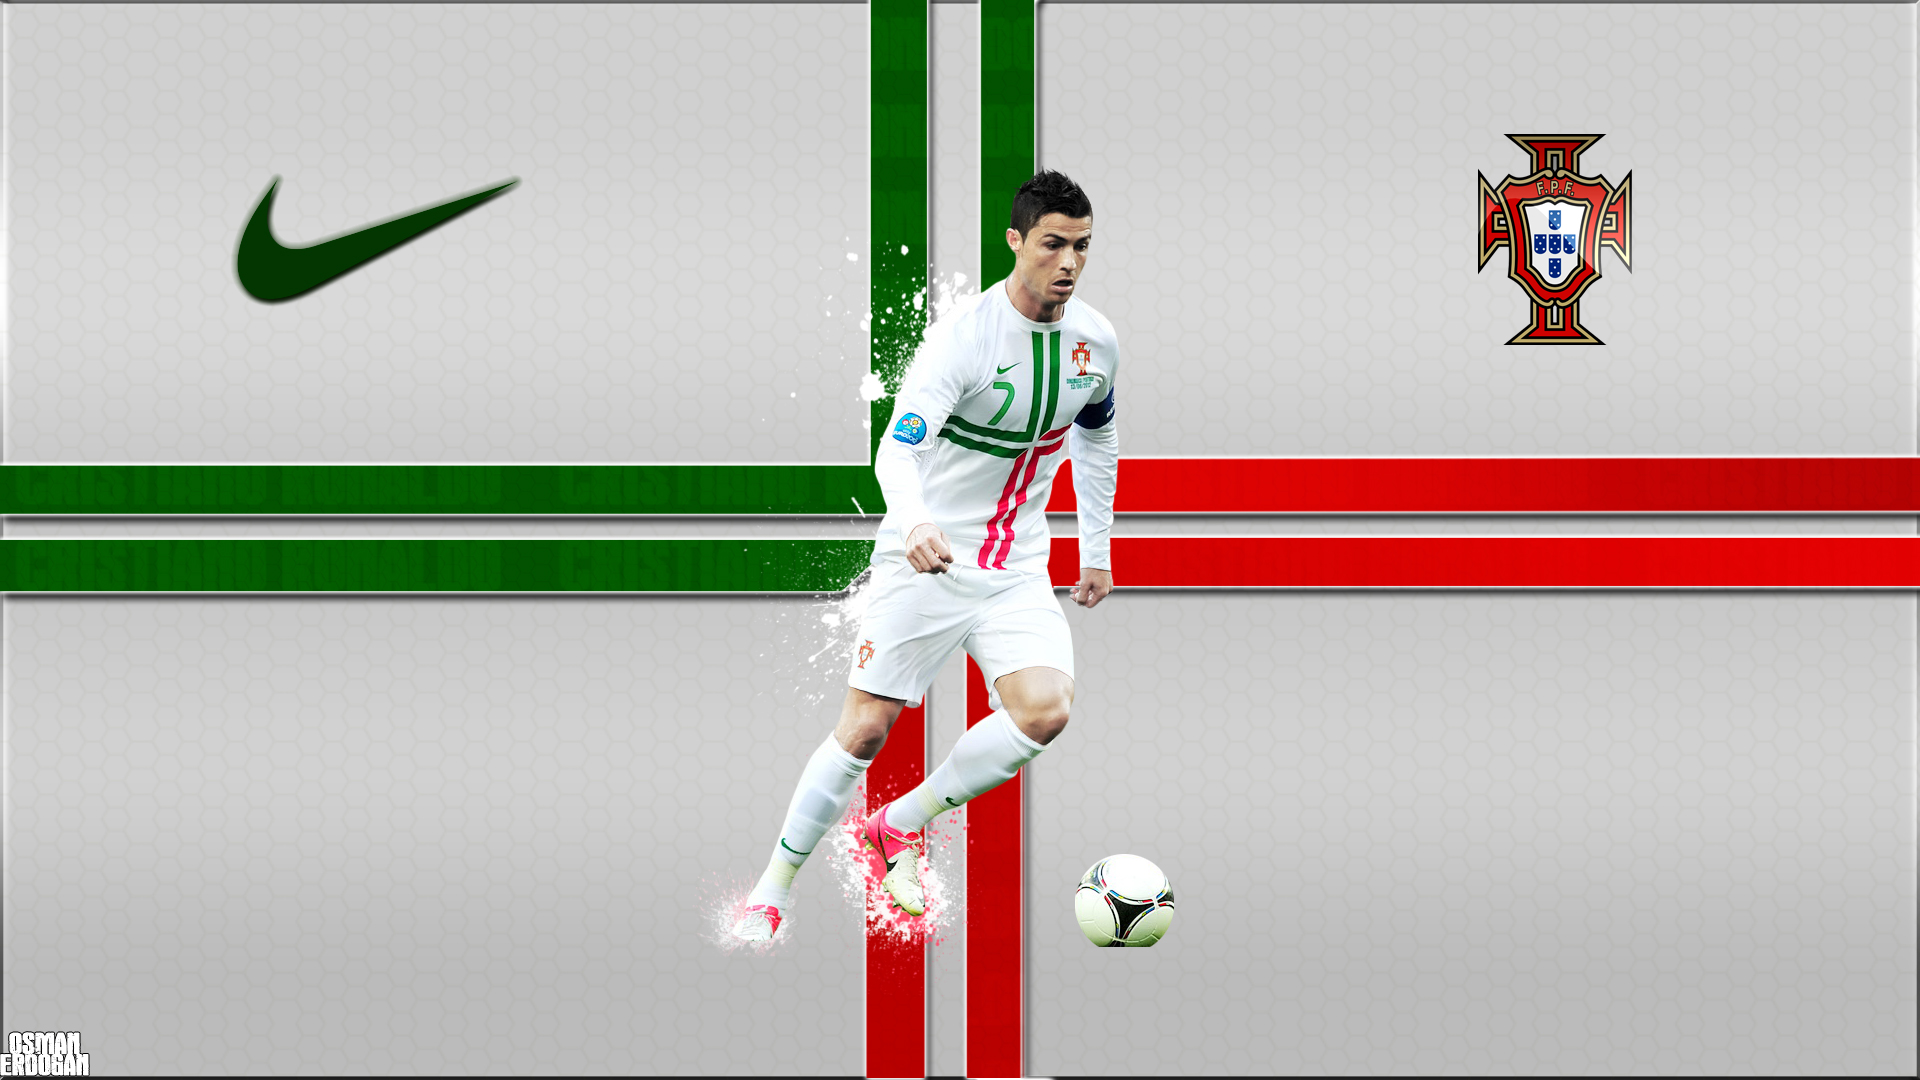 Cristiano Ronaldo Portugal Hd Wallpapers Desktop And: Wallpaper, High Definition, High